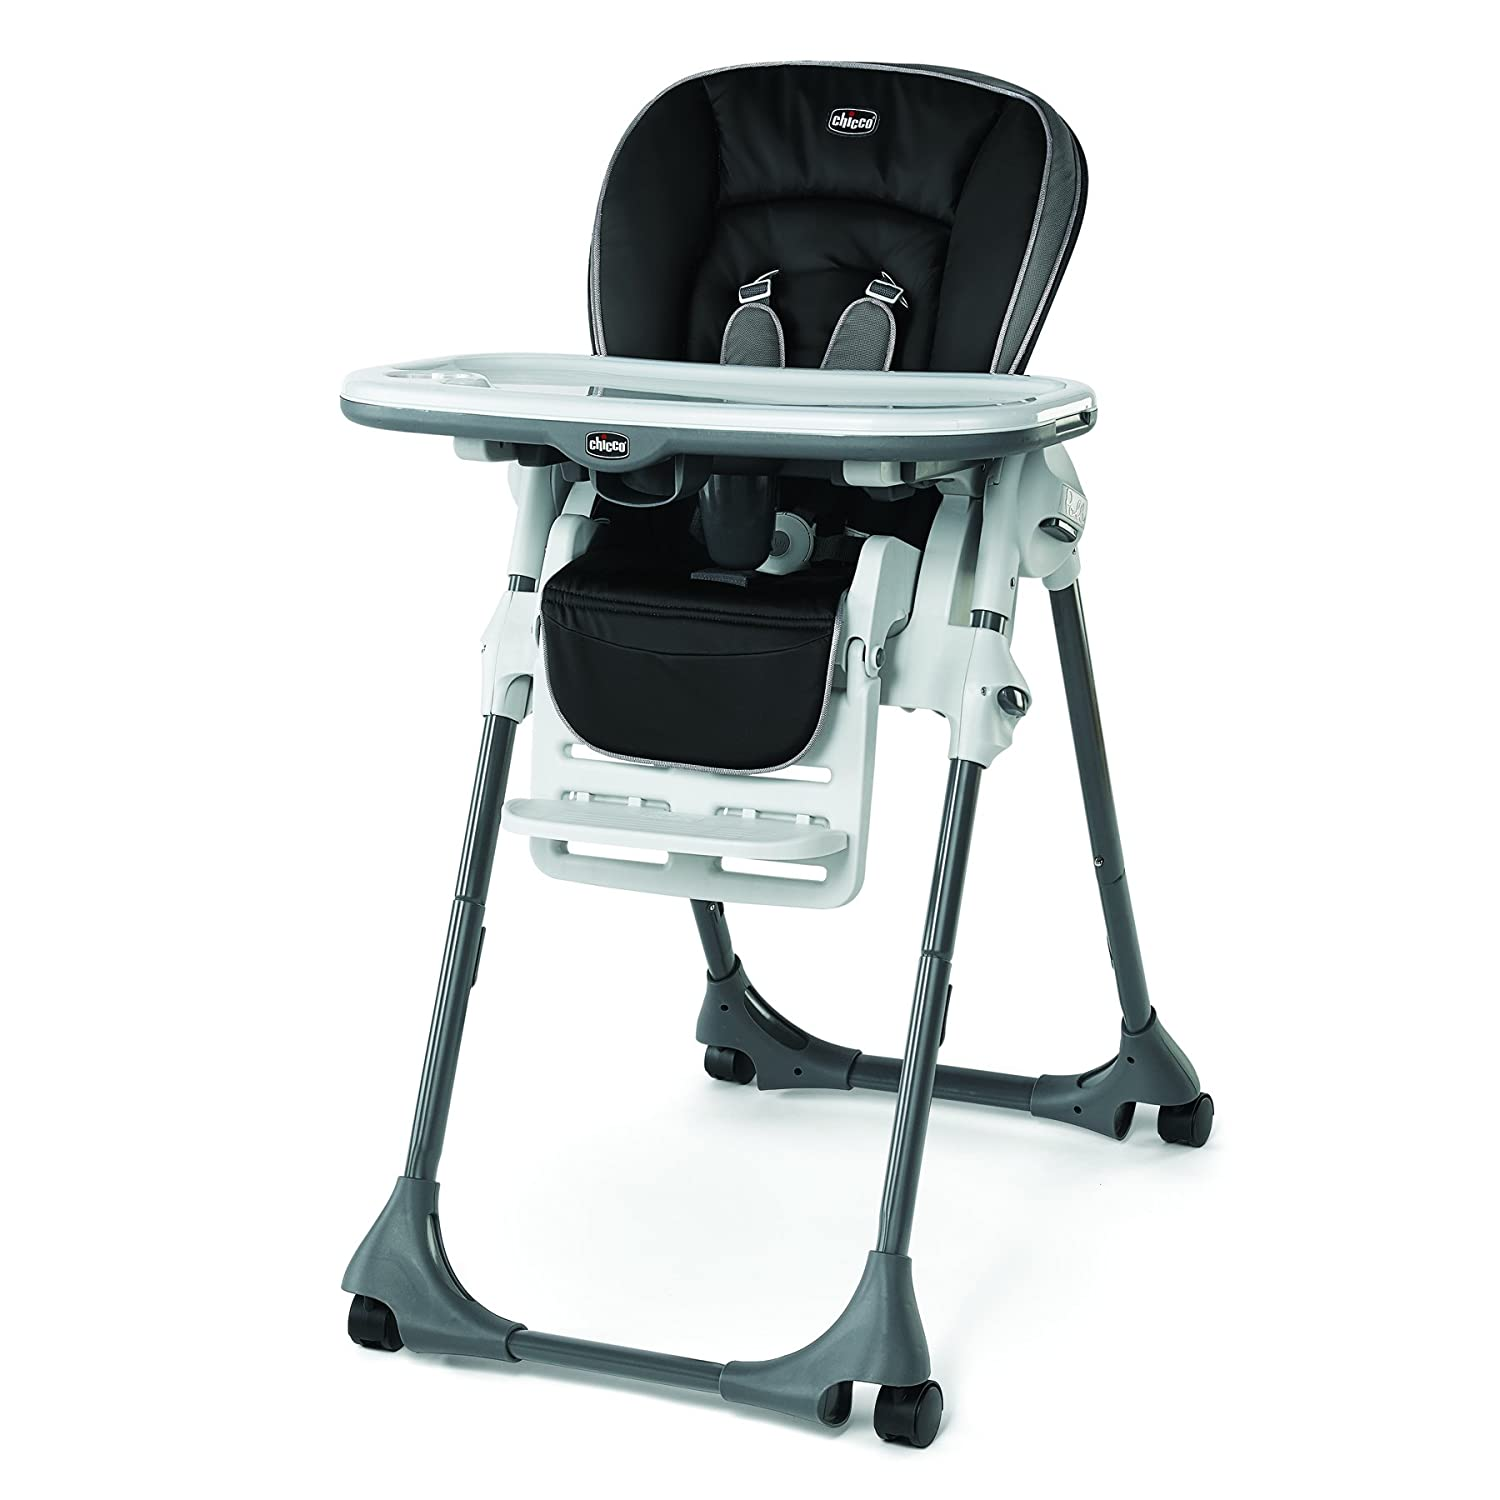 Chicco 7907751 Polly Single-Pad High Chair Orion, Black